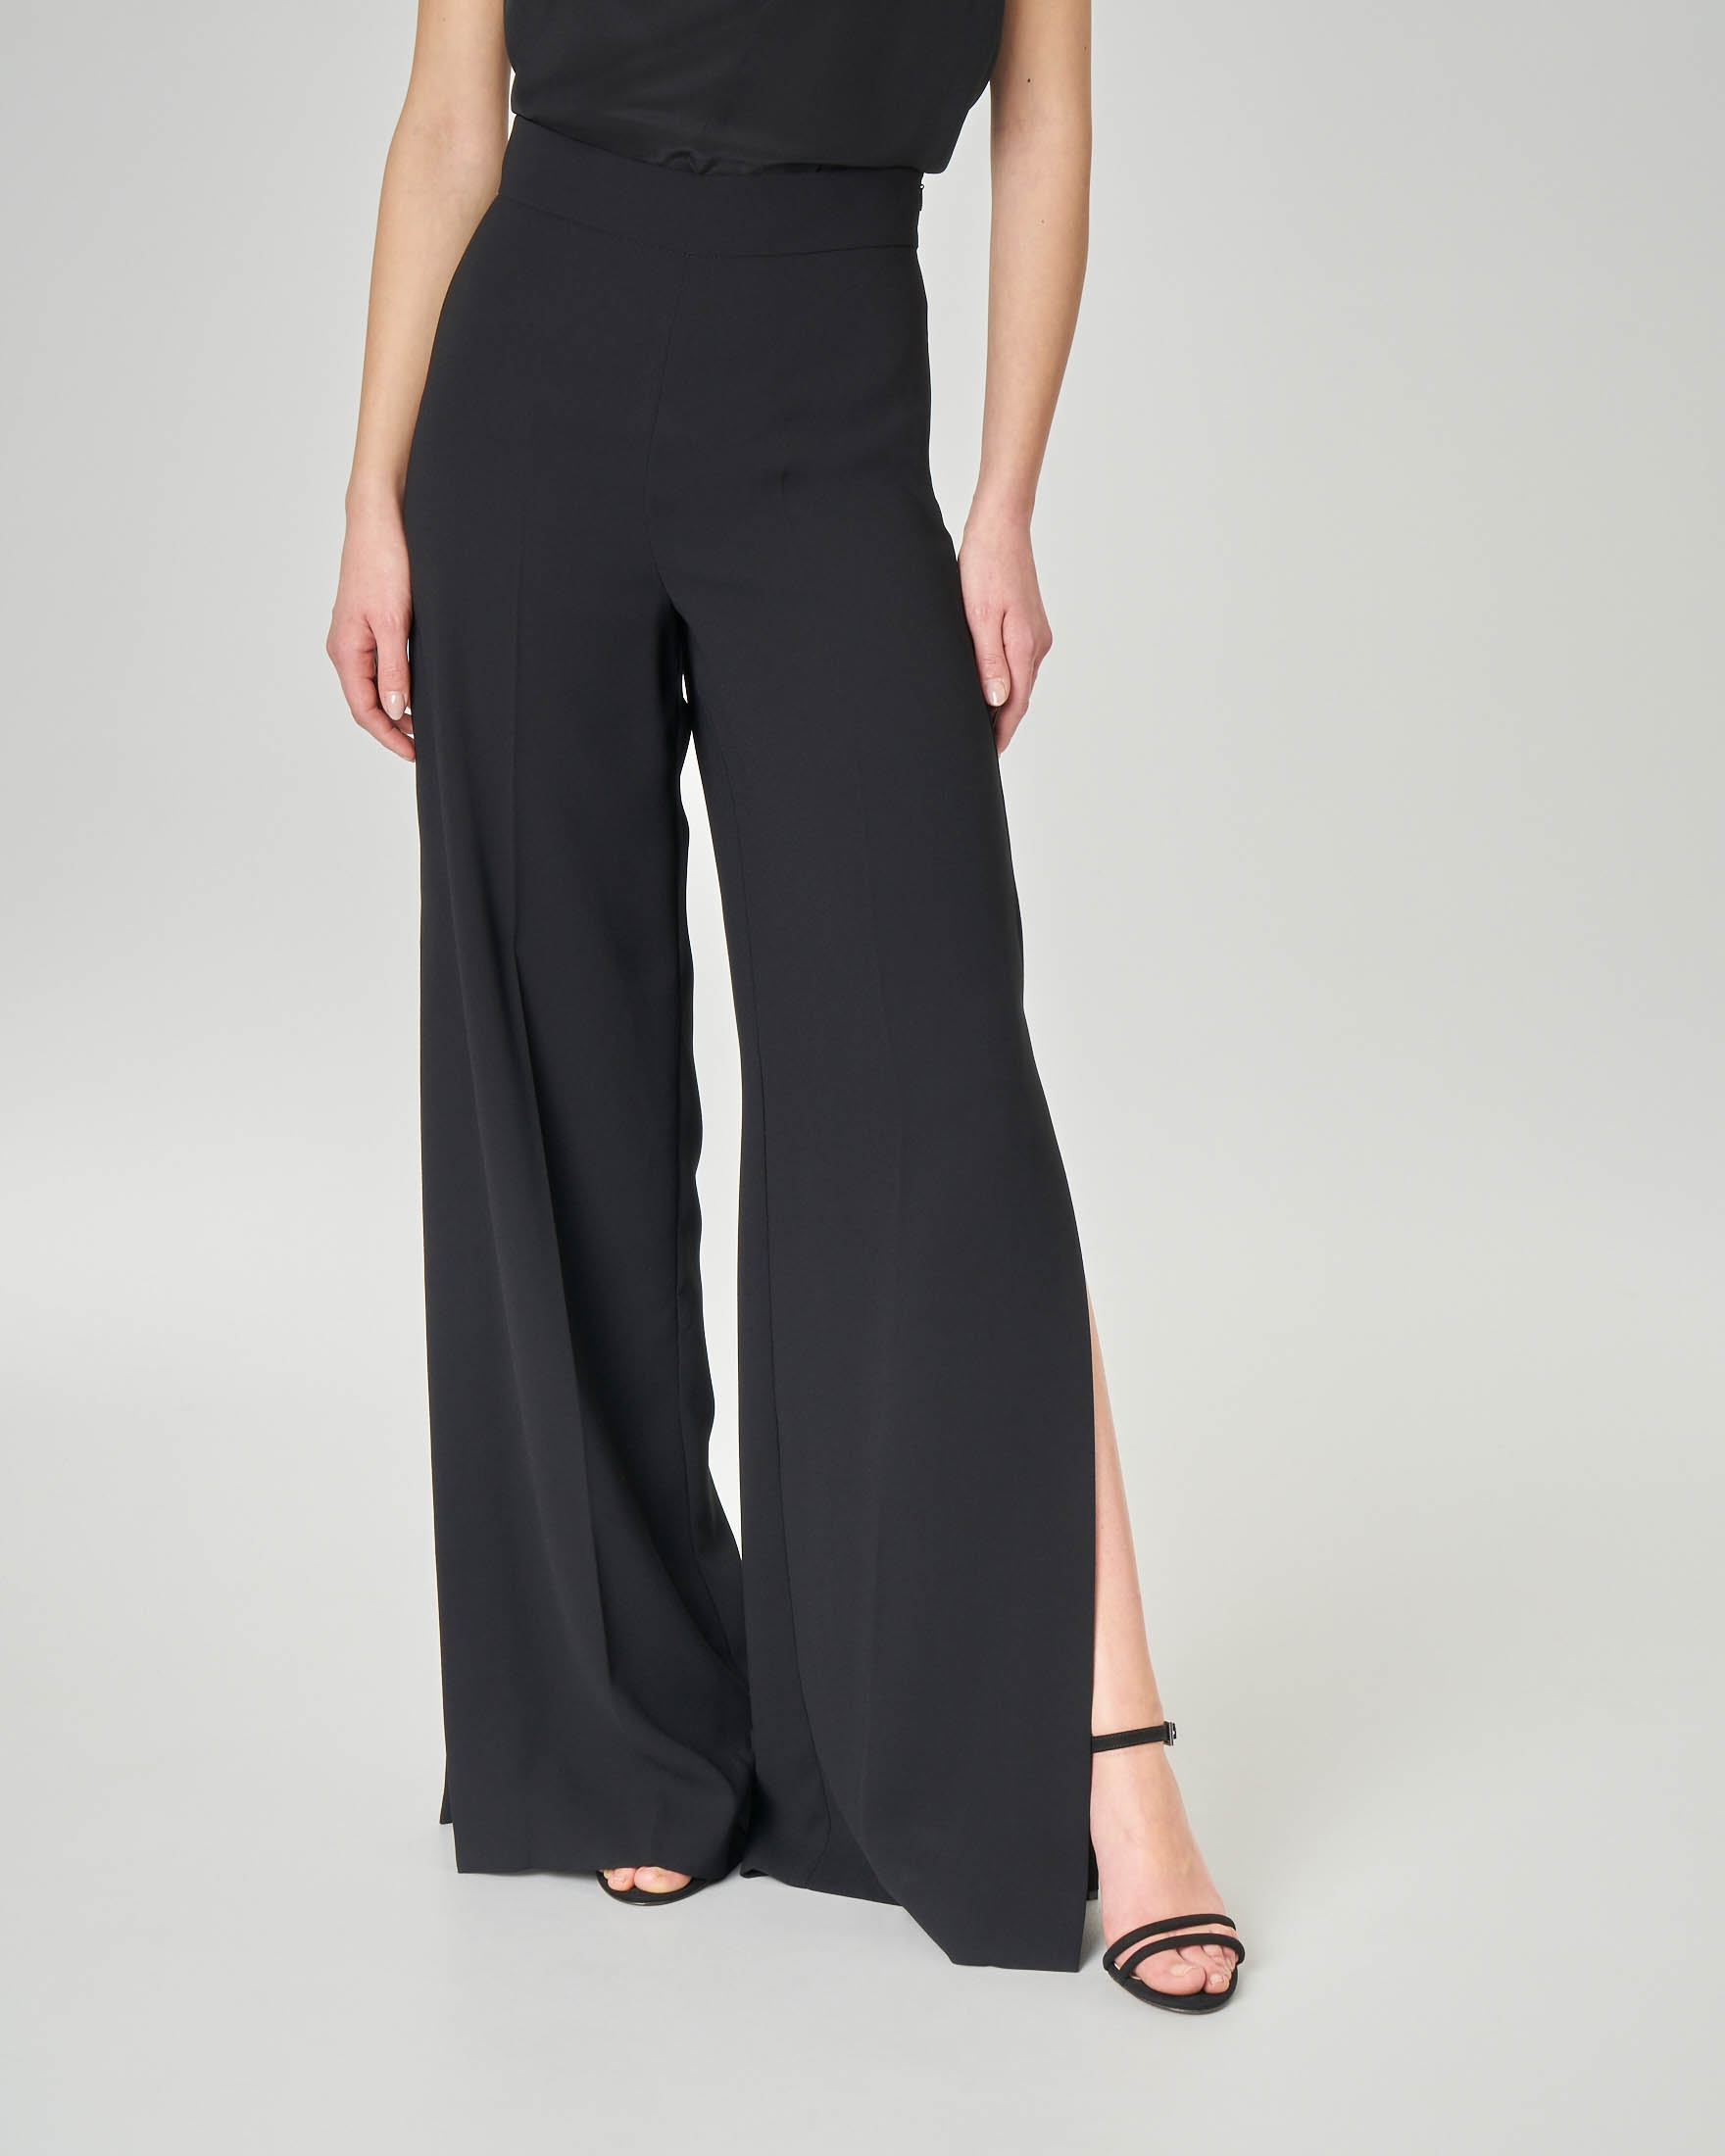 comprare on line 9dcba 49941 Pantaloni in cady neri con spacco laterale